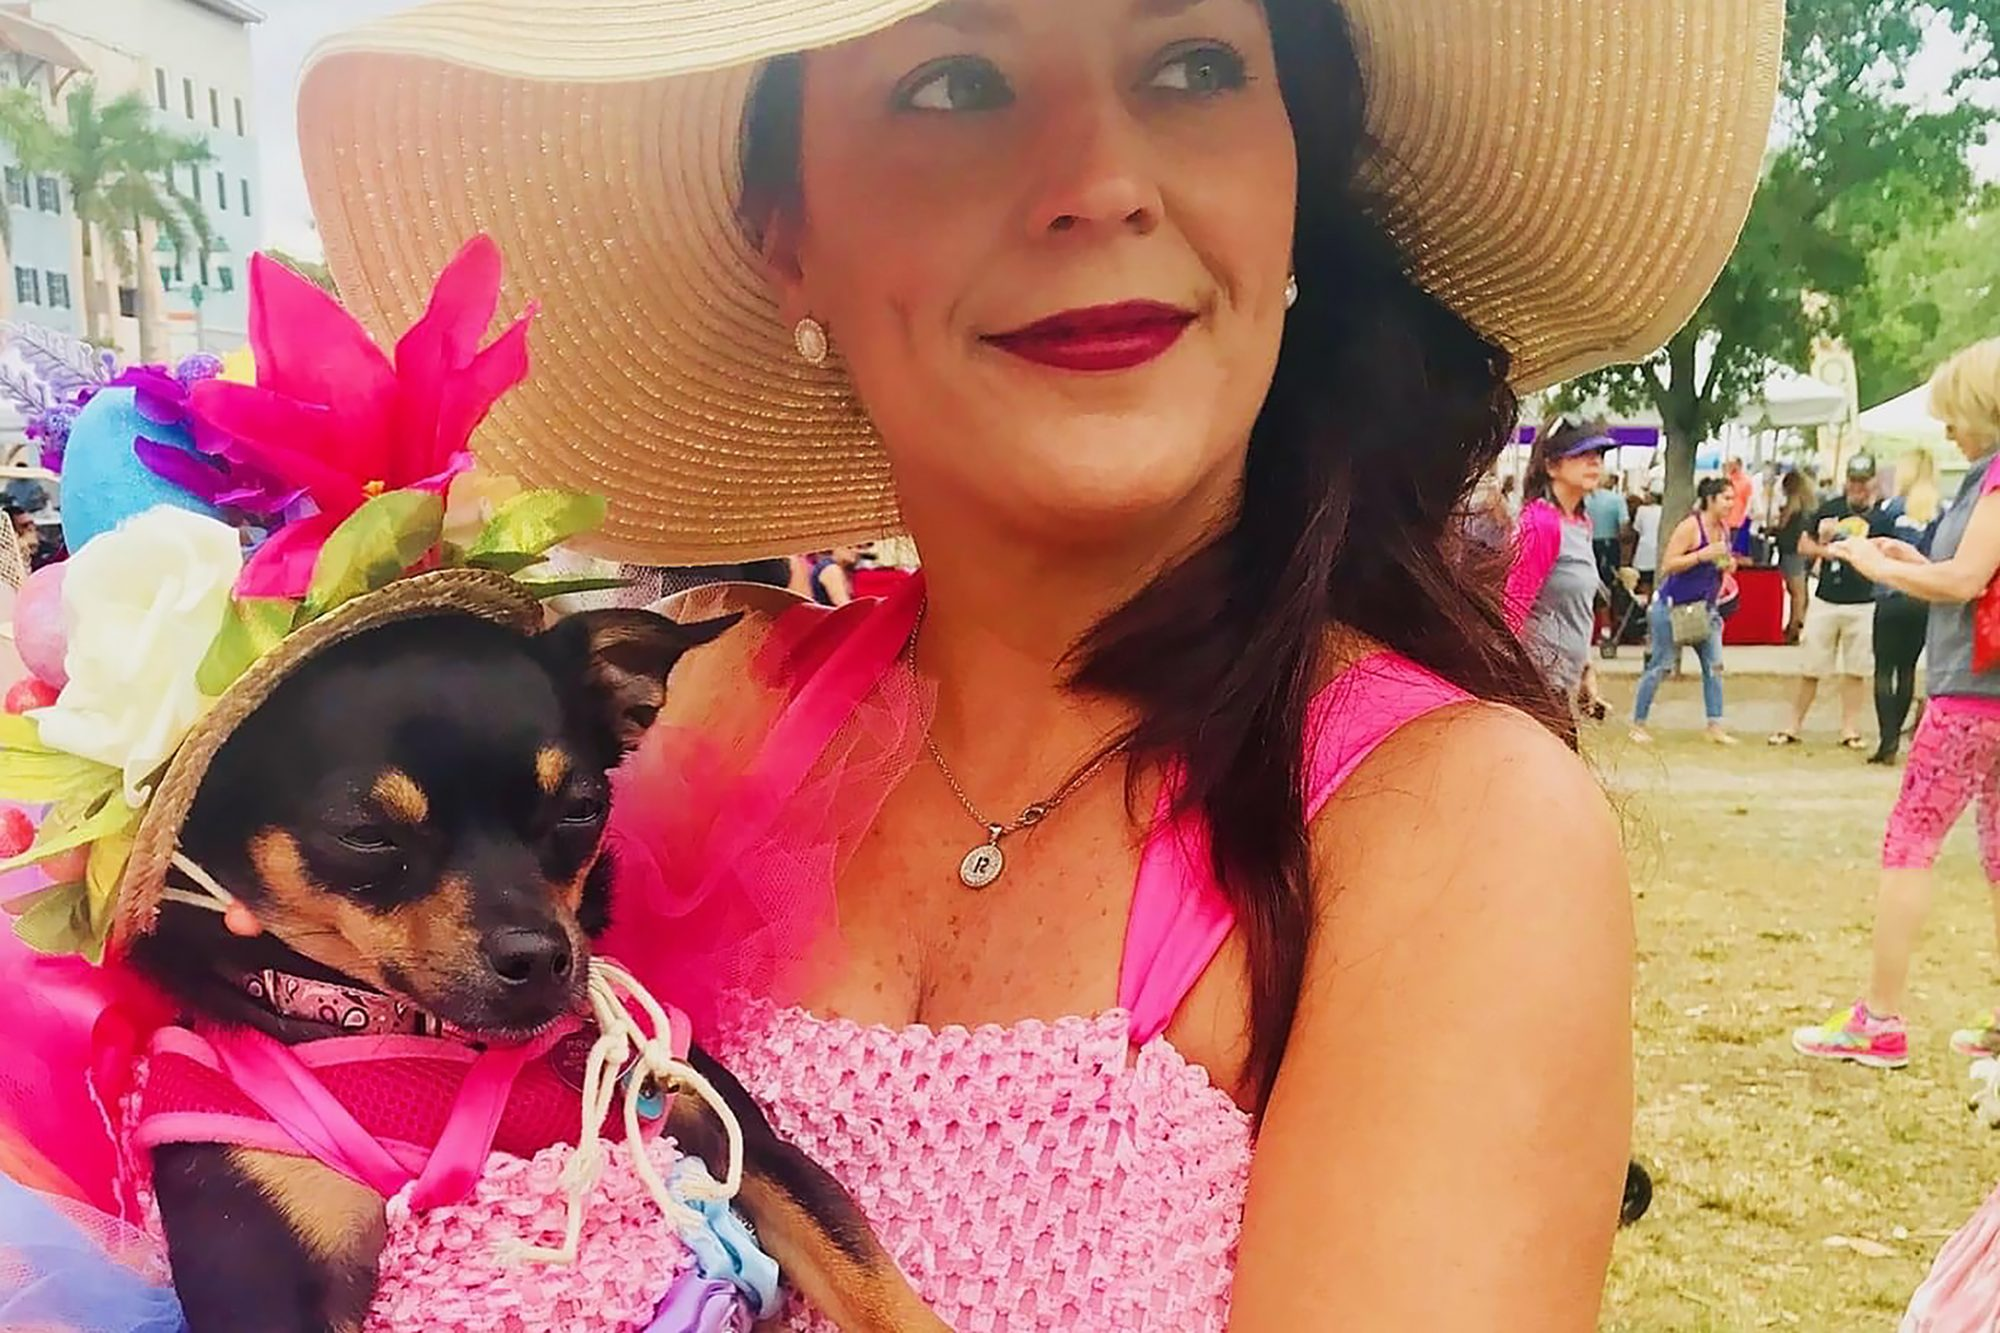 Presley the dog and owner Rebecca in matching pink outfits